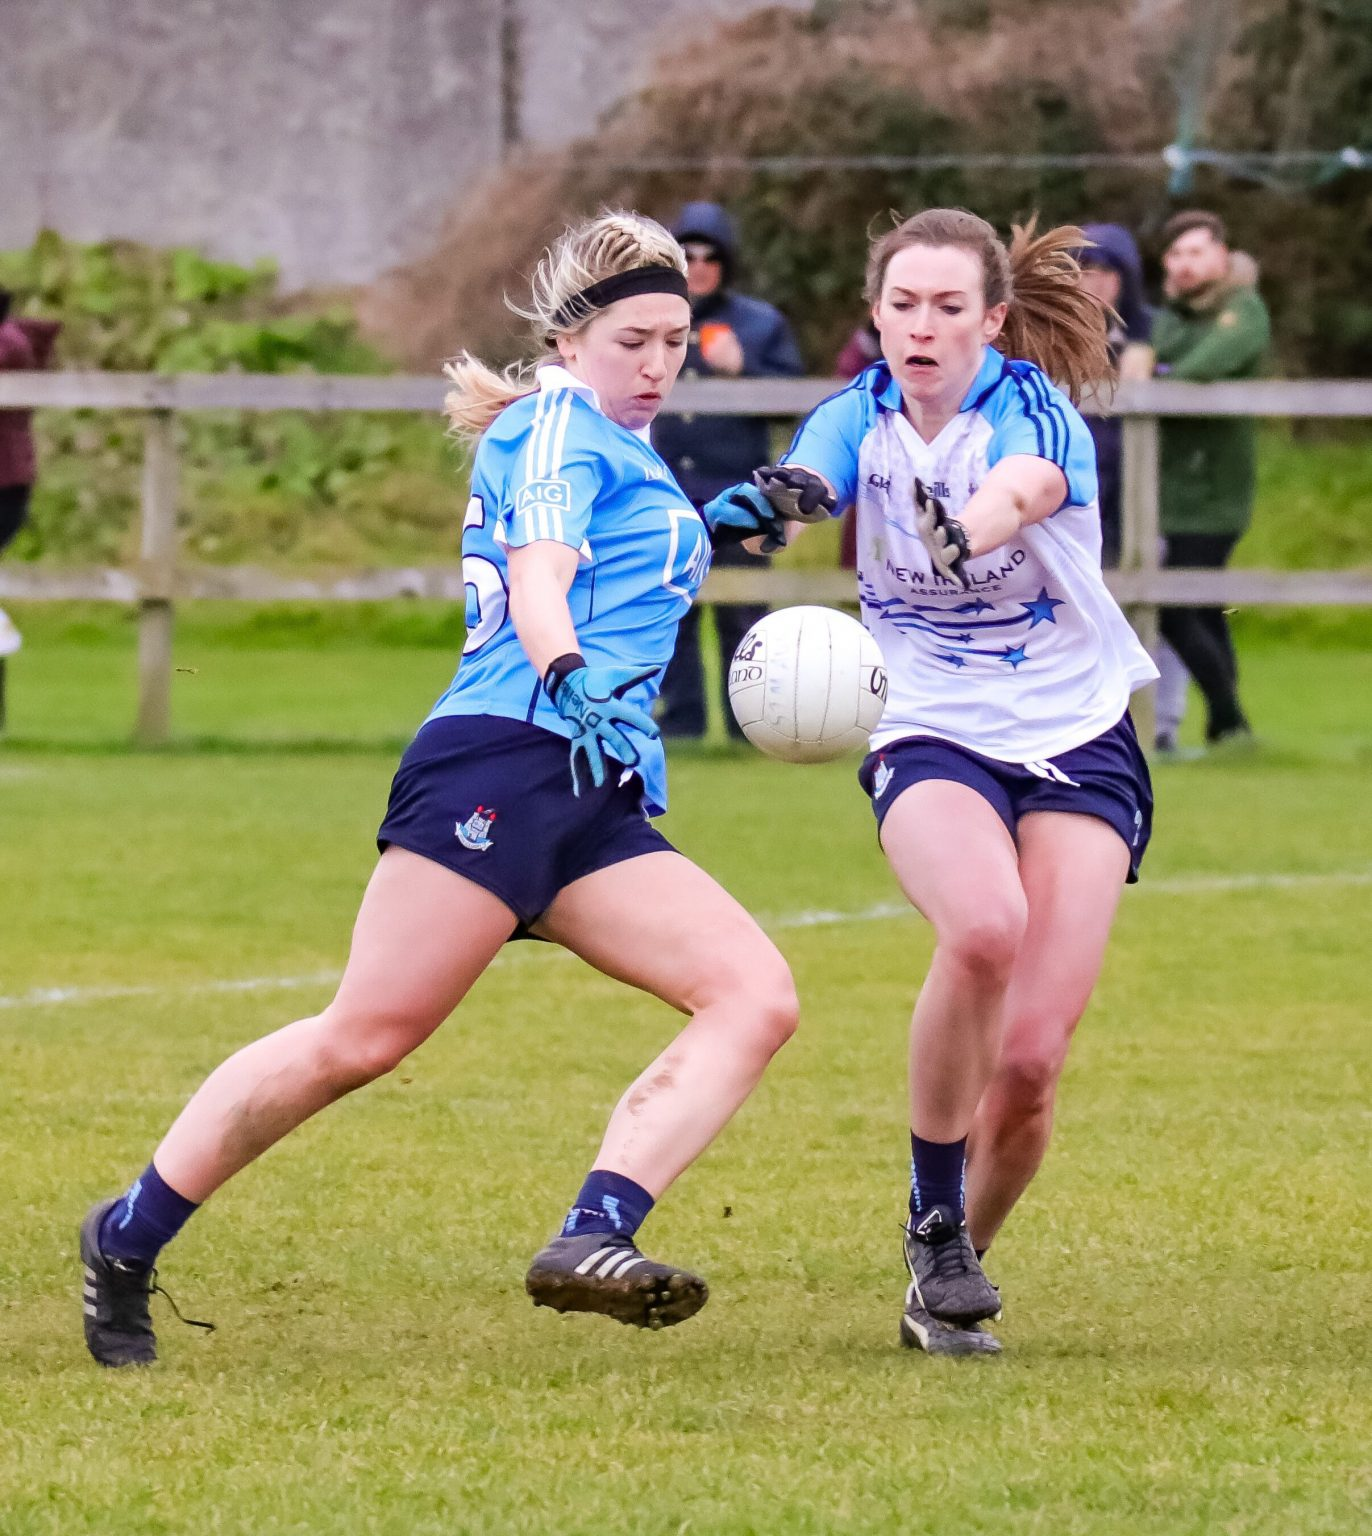 Two Dublin Ladies footballers one in a sky blue jersey and the other in a white jersey with blue sleeves battle for the ball at the Dublin LGFA Senior and Junior Dub Stars event